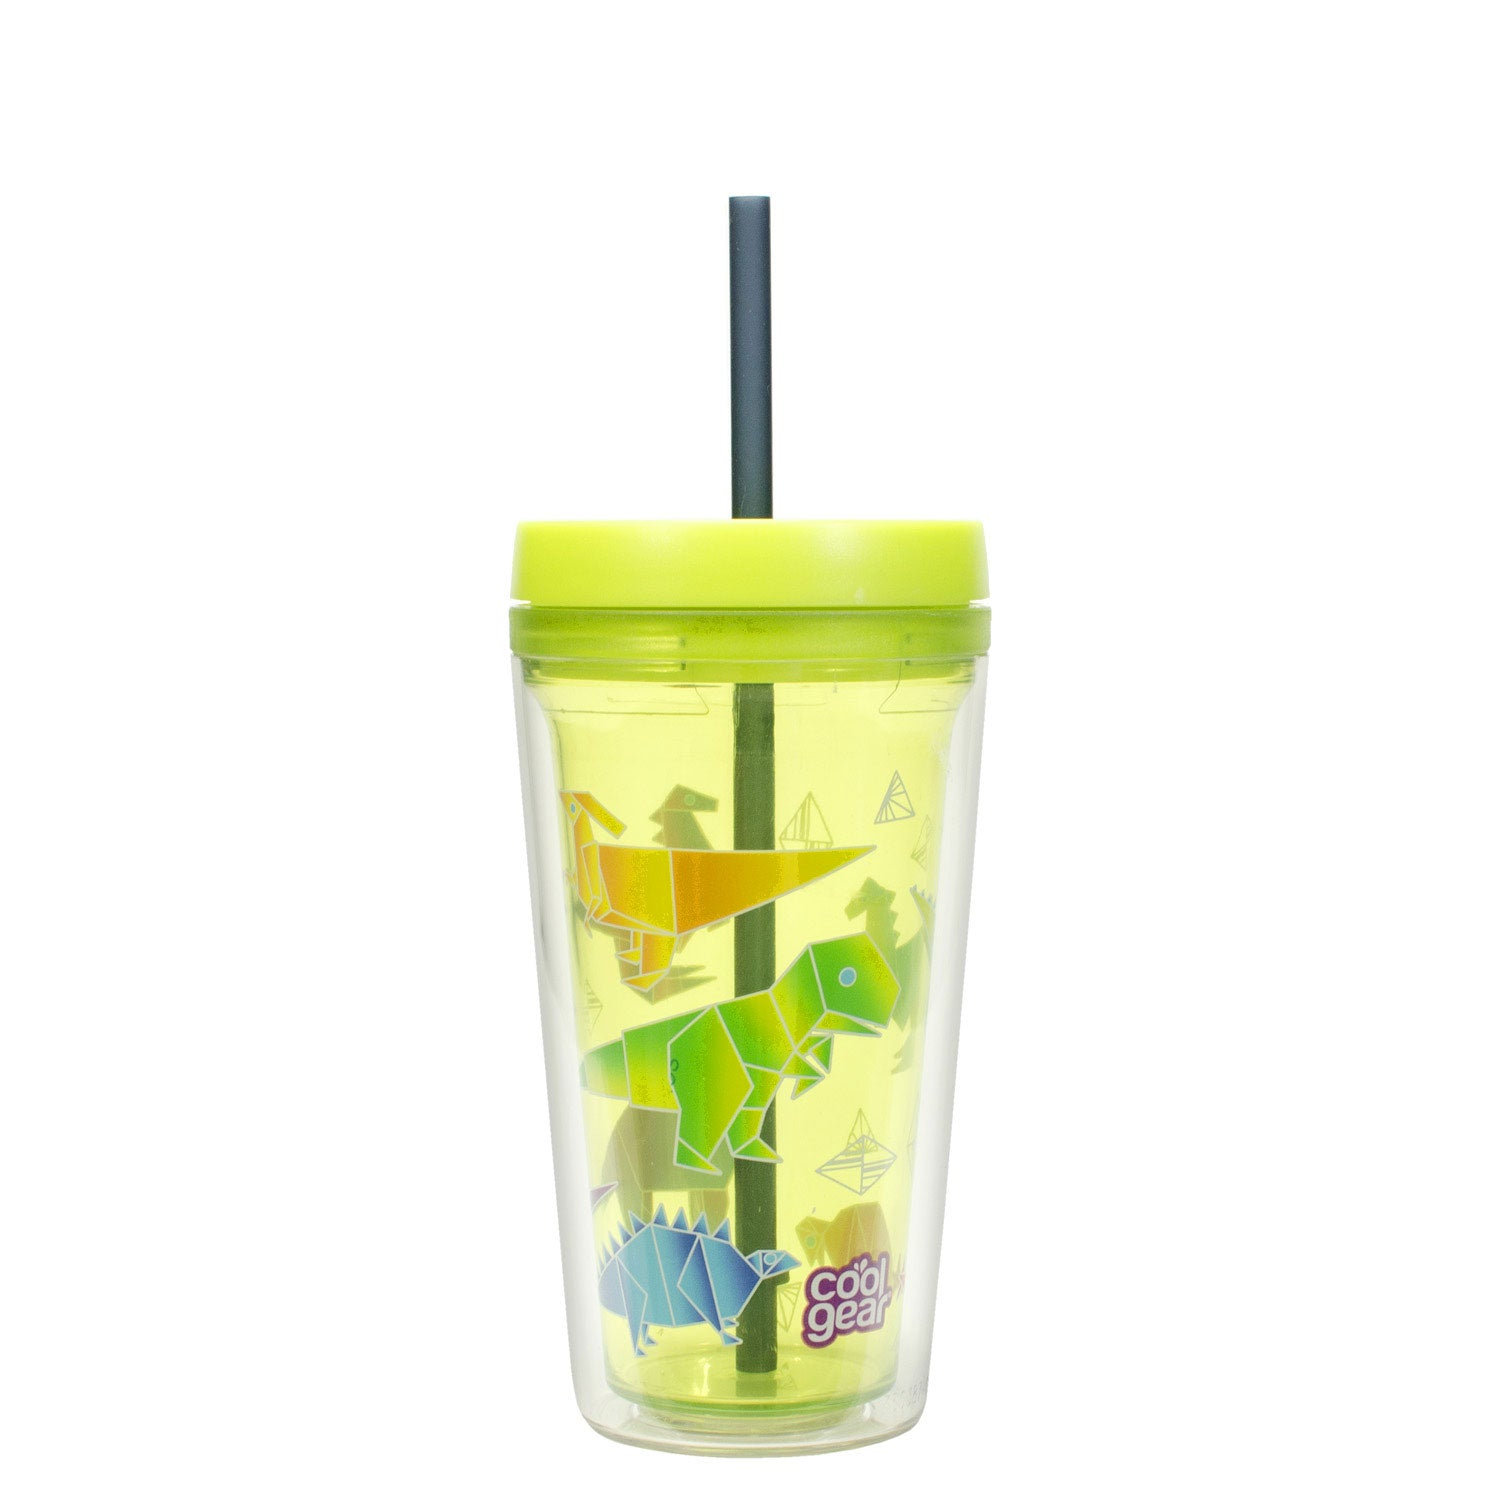 0b3ad56d917 Cool Gear | Water Bottles, Tumblers, Drink Cans, Travel Mugs